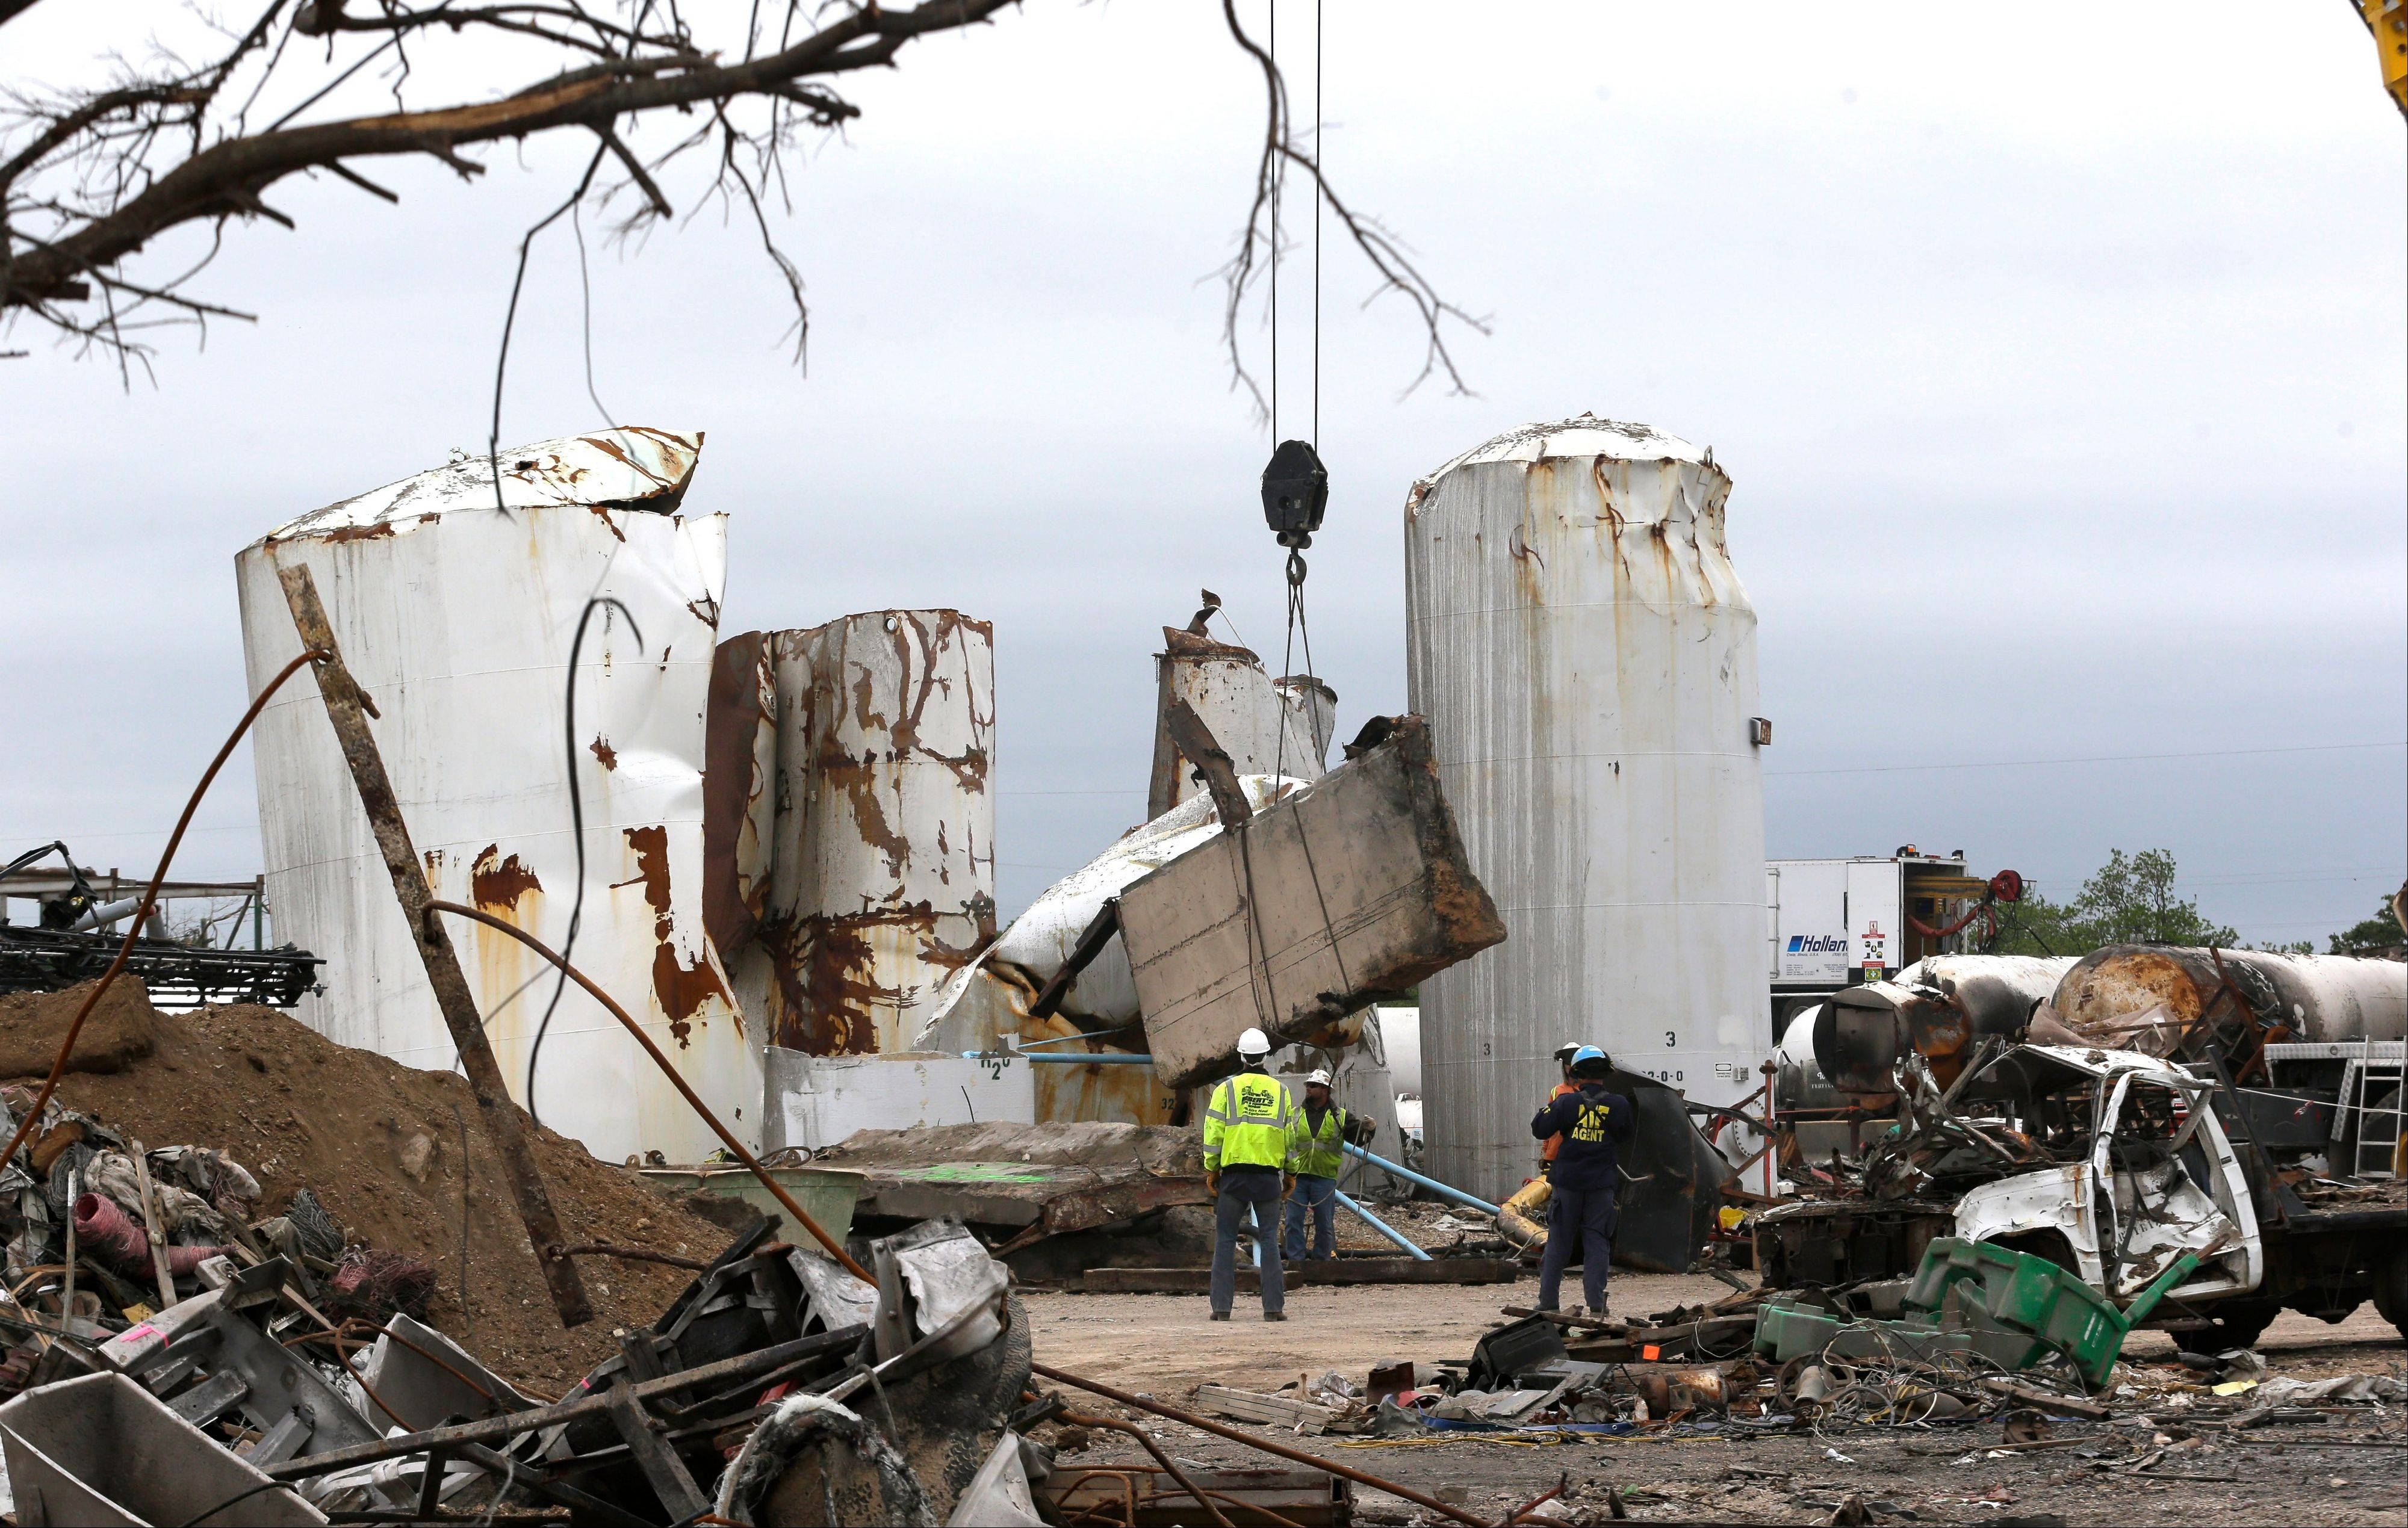 Associated Press/May 2Investigators move and look through the debris of the destroyed fertilizer plant in West, Texas.